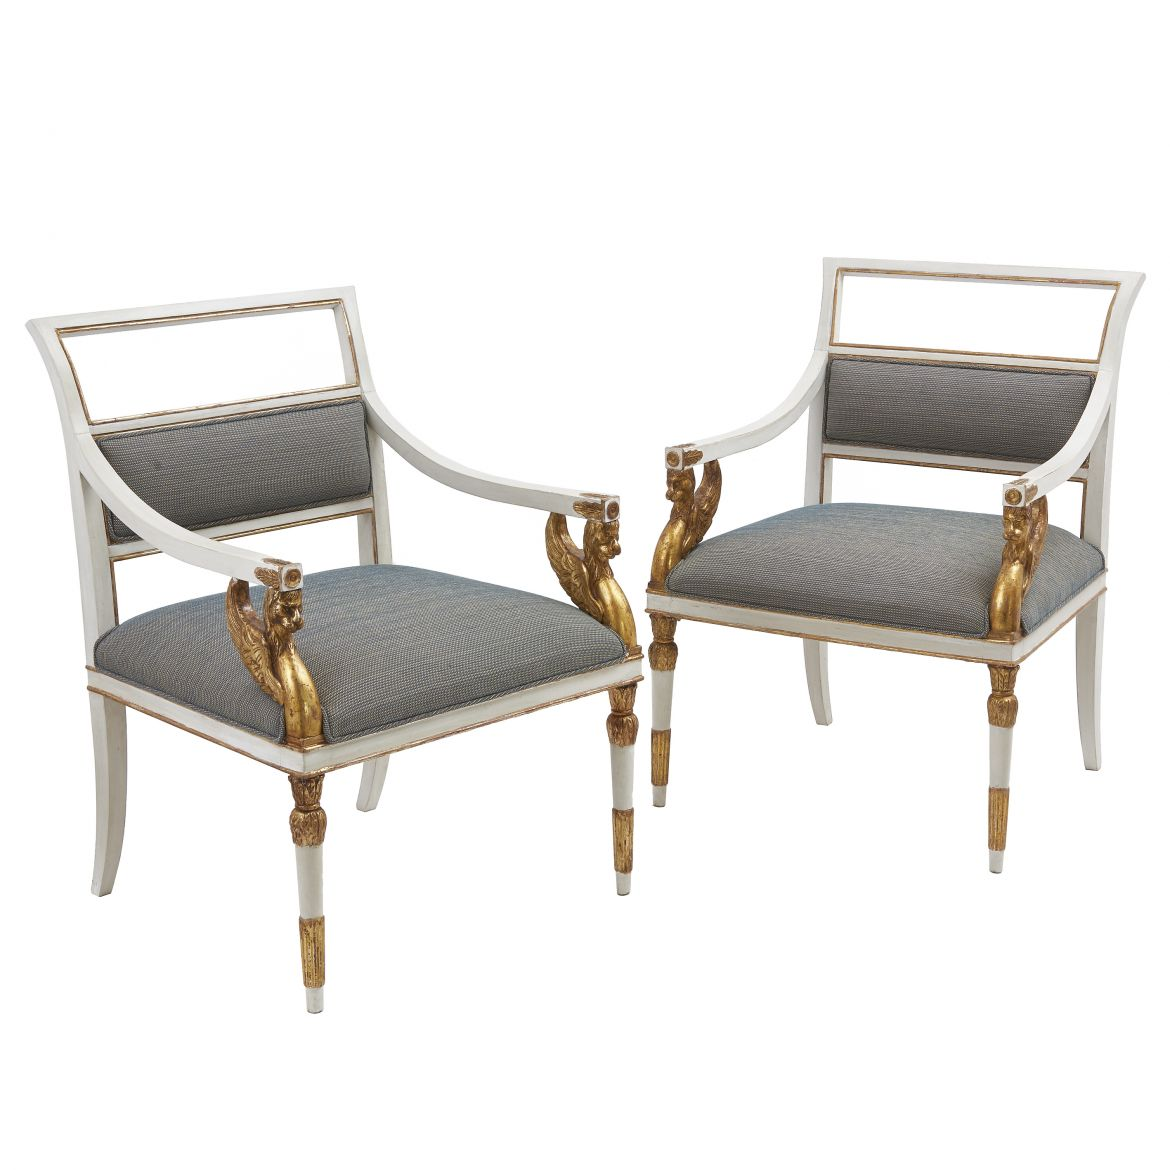 Italian Neoclassical Parcel Gilt Chairs